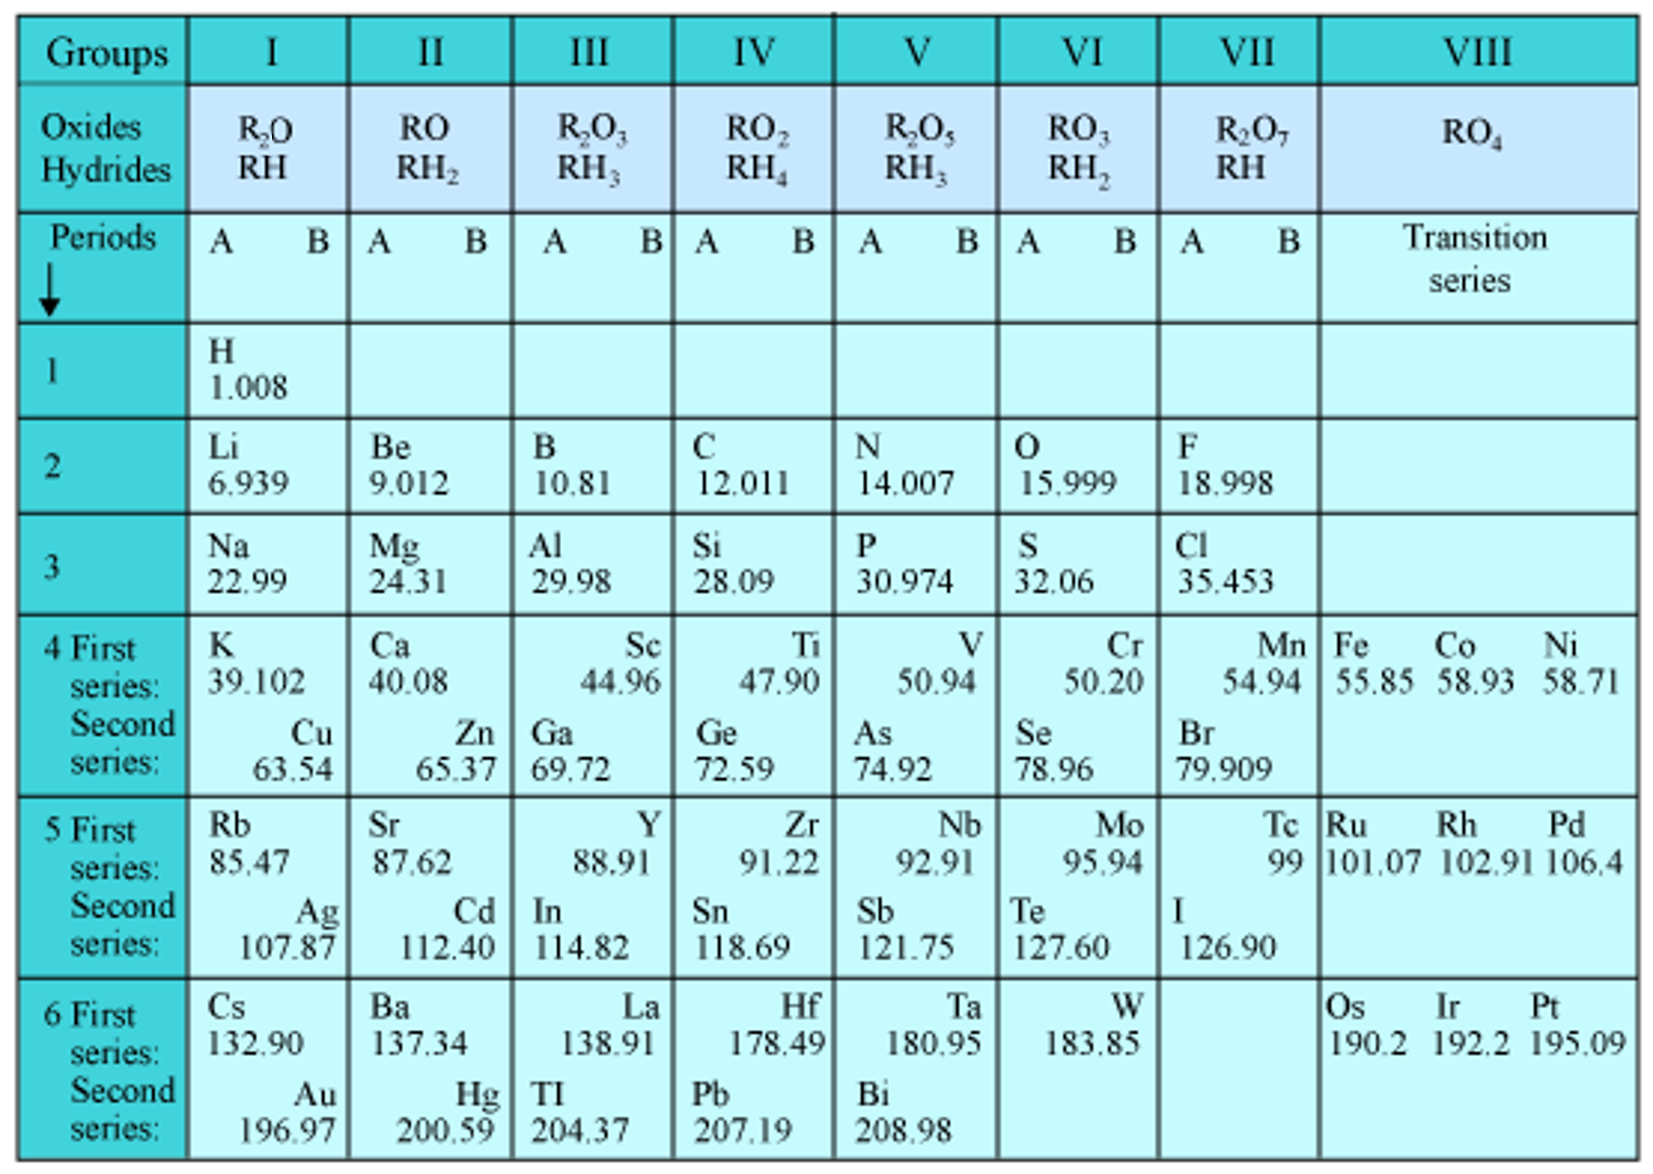 Periodic classification of elements class 10 revision important ques periodic classification of elements mendeleevs periodic table was urtaz Gallery